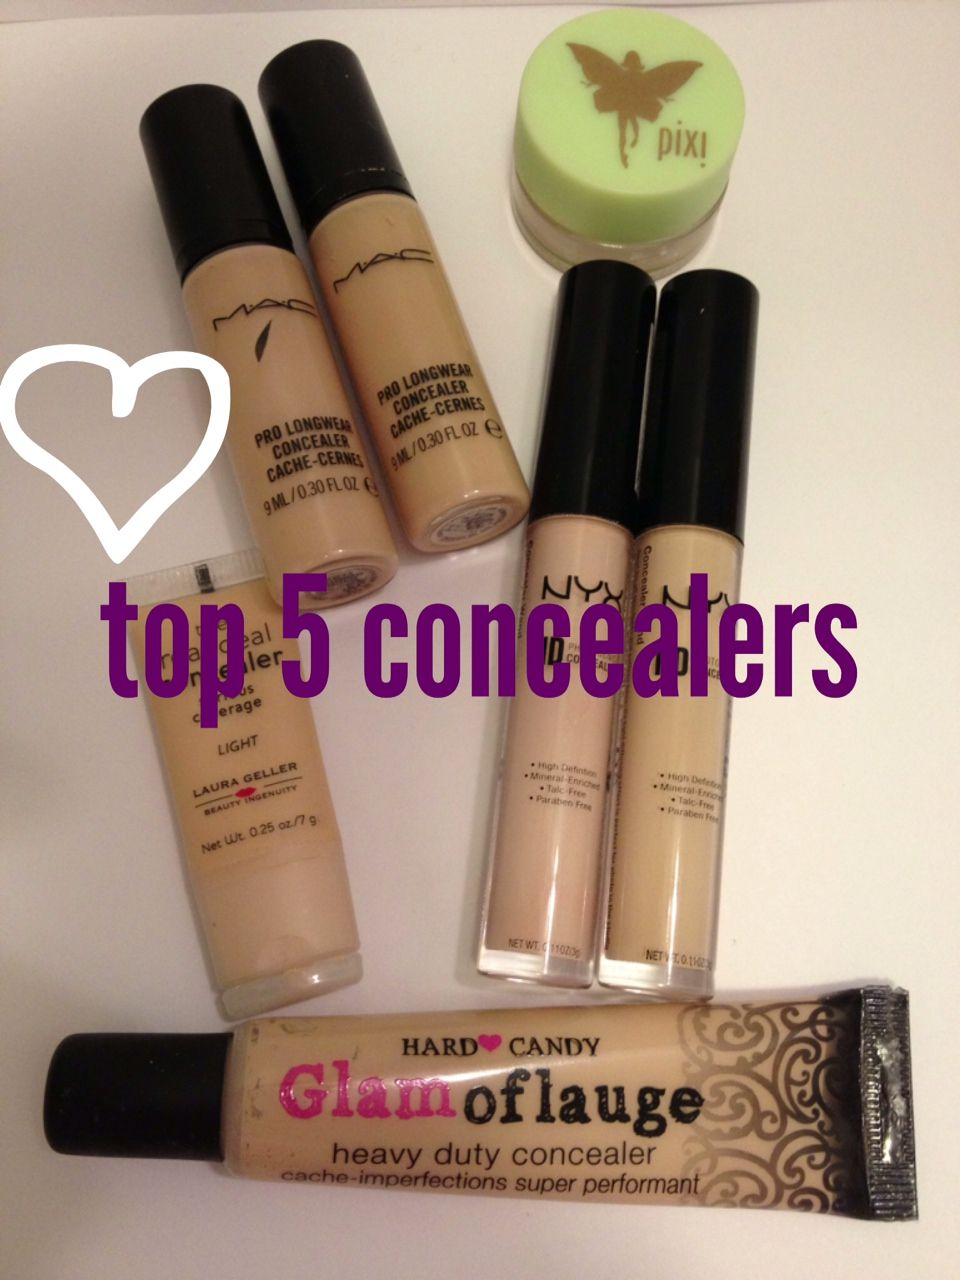 Top 5 concealers including MAC, NYX, Laura Geller, Pixi ...